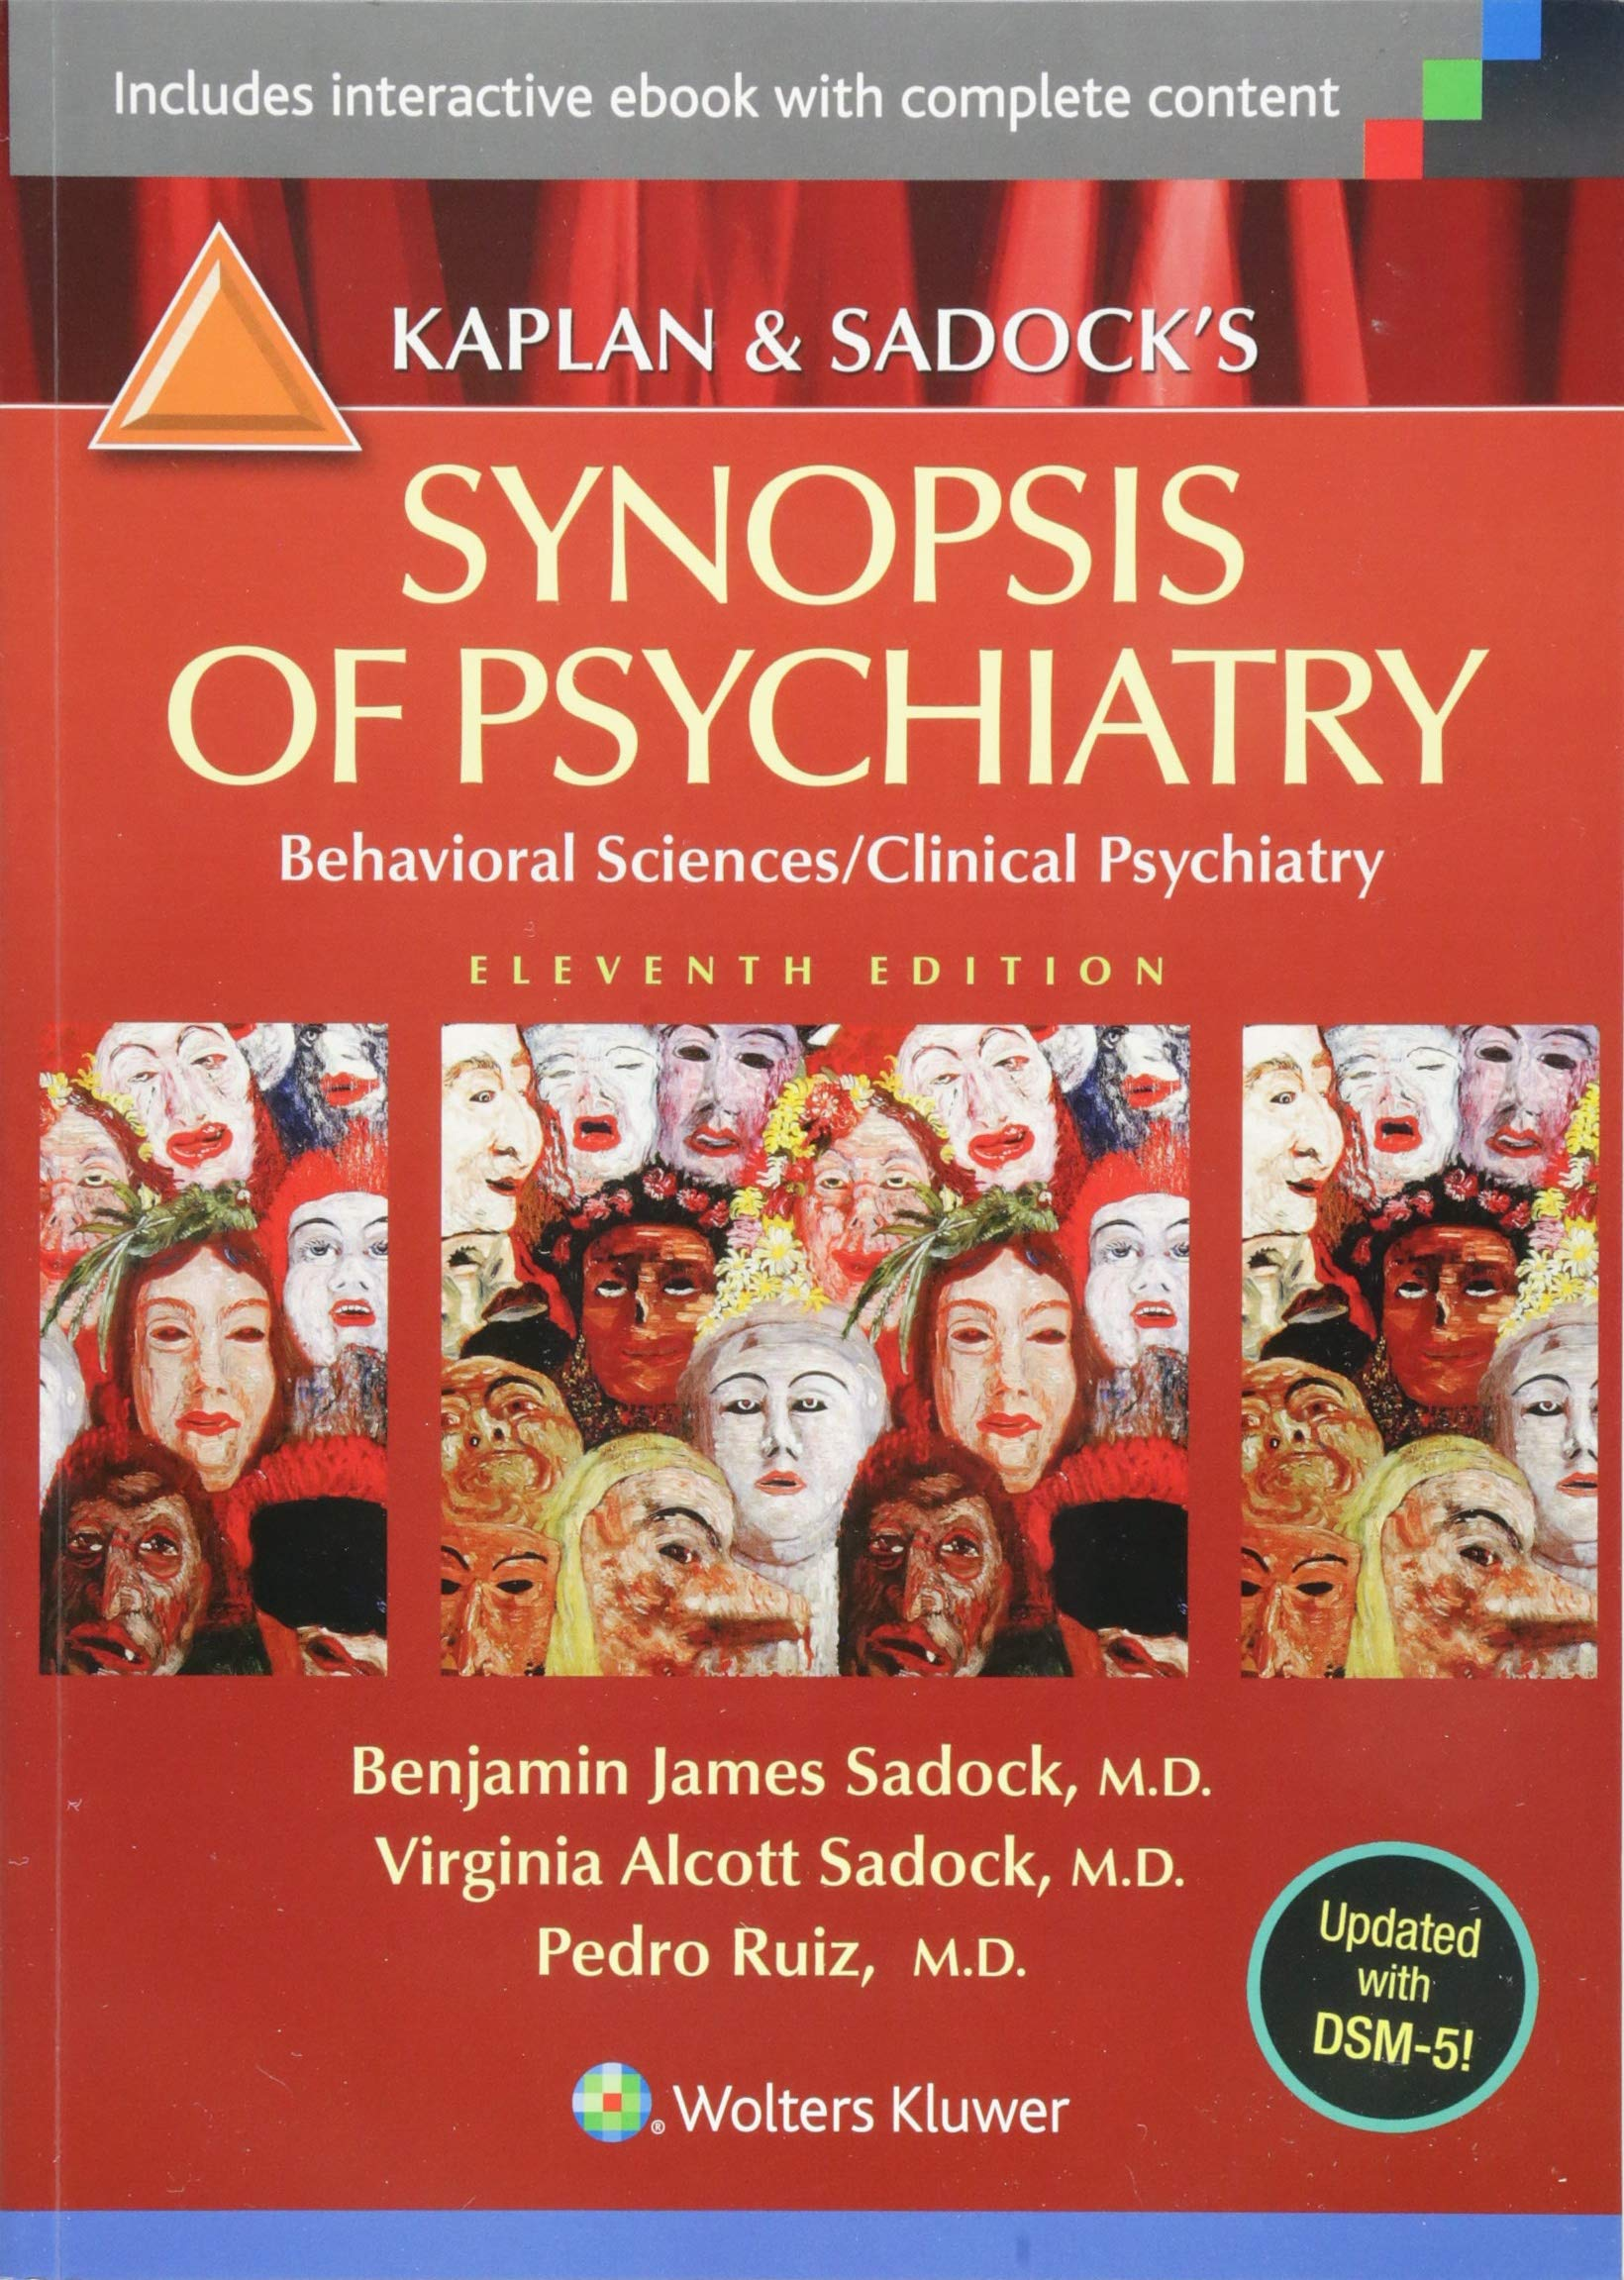 Image OfKaplan And Sadock's Synopsis Of Psychiatry: Behavioral Sciences/Clinical Psychiatry